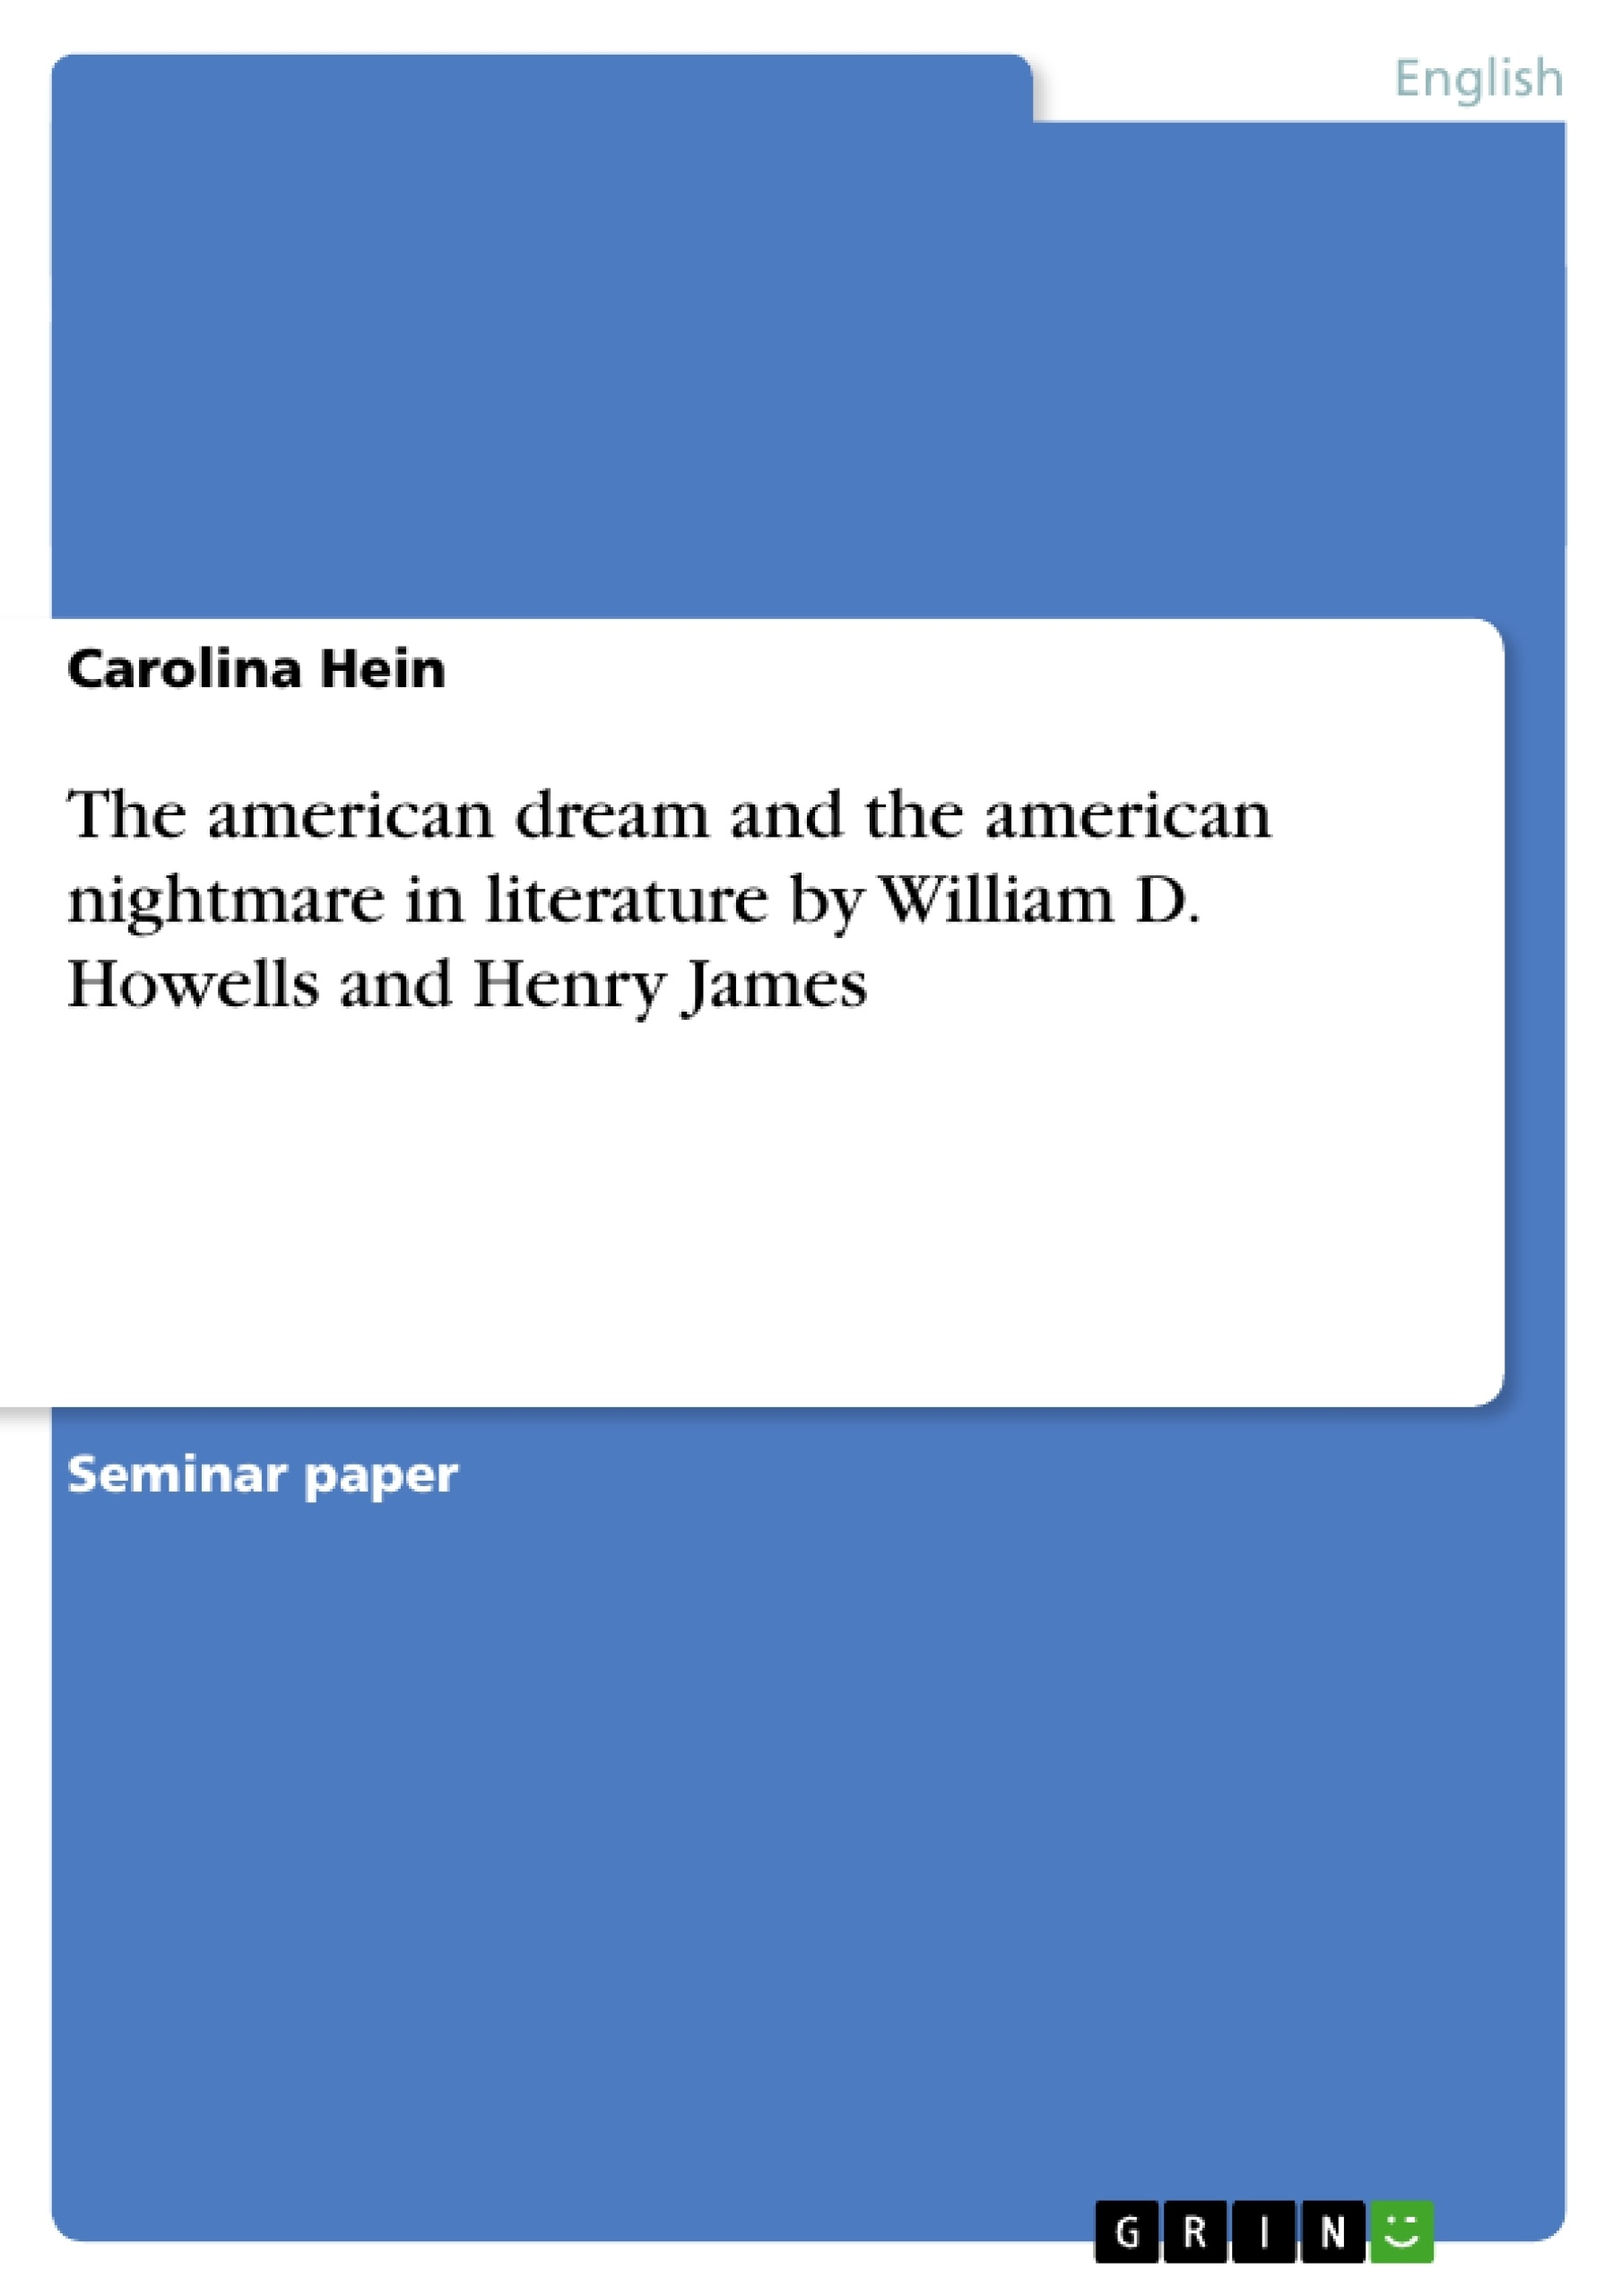 The American Dream Quotes The American Dream And The American Nightmare In Literature.